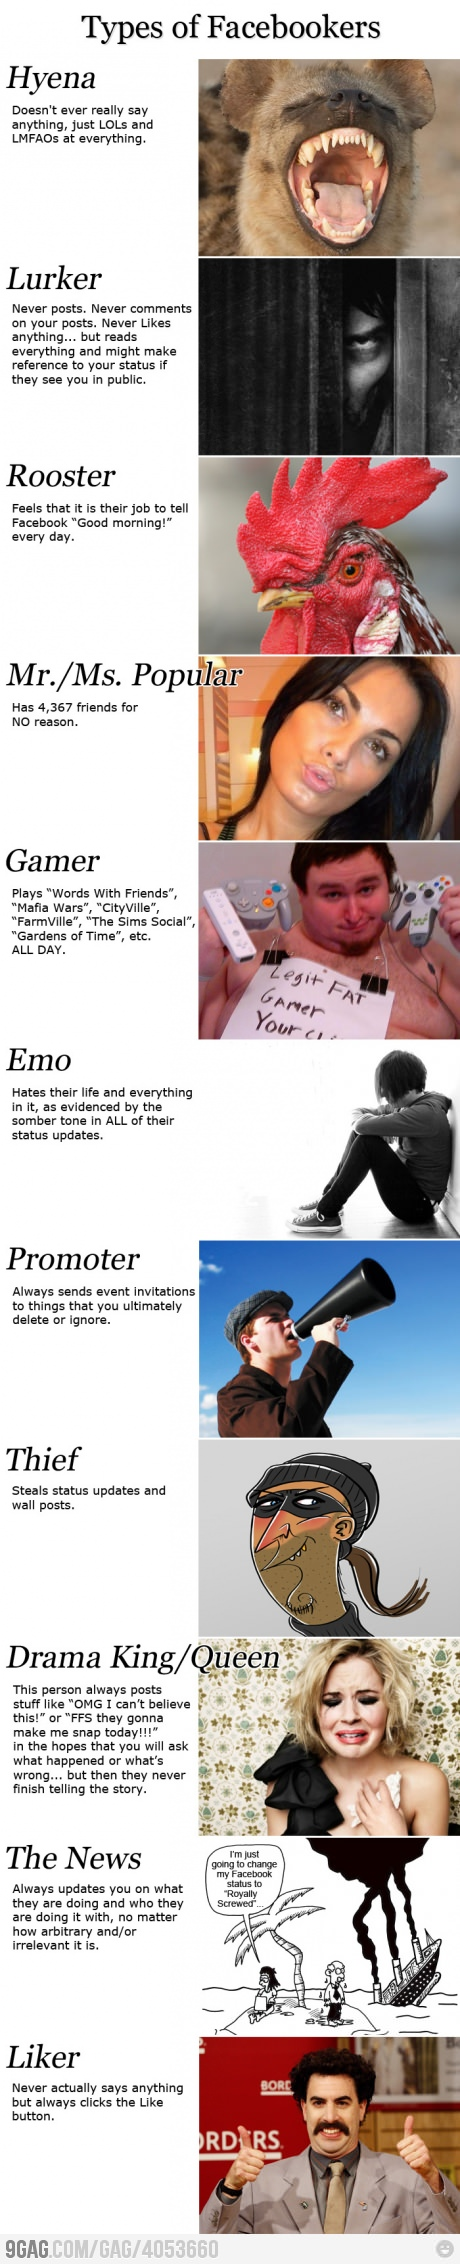 Types of Facebookers.